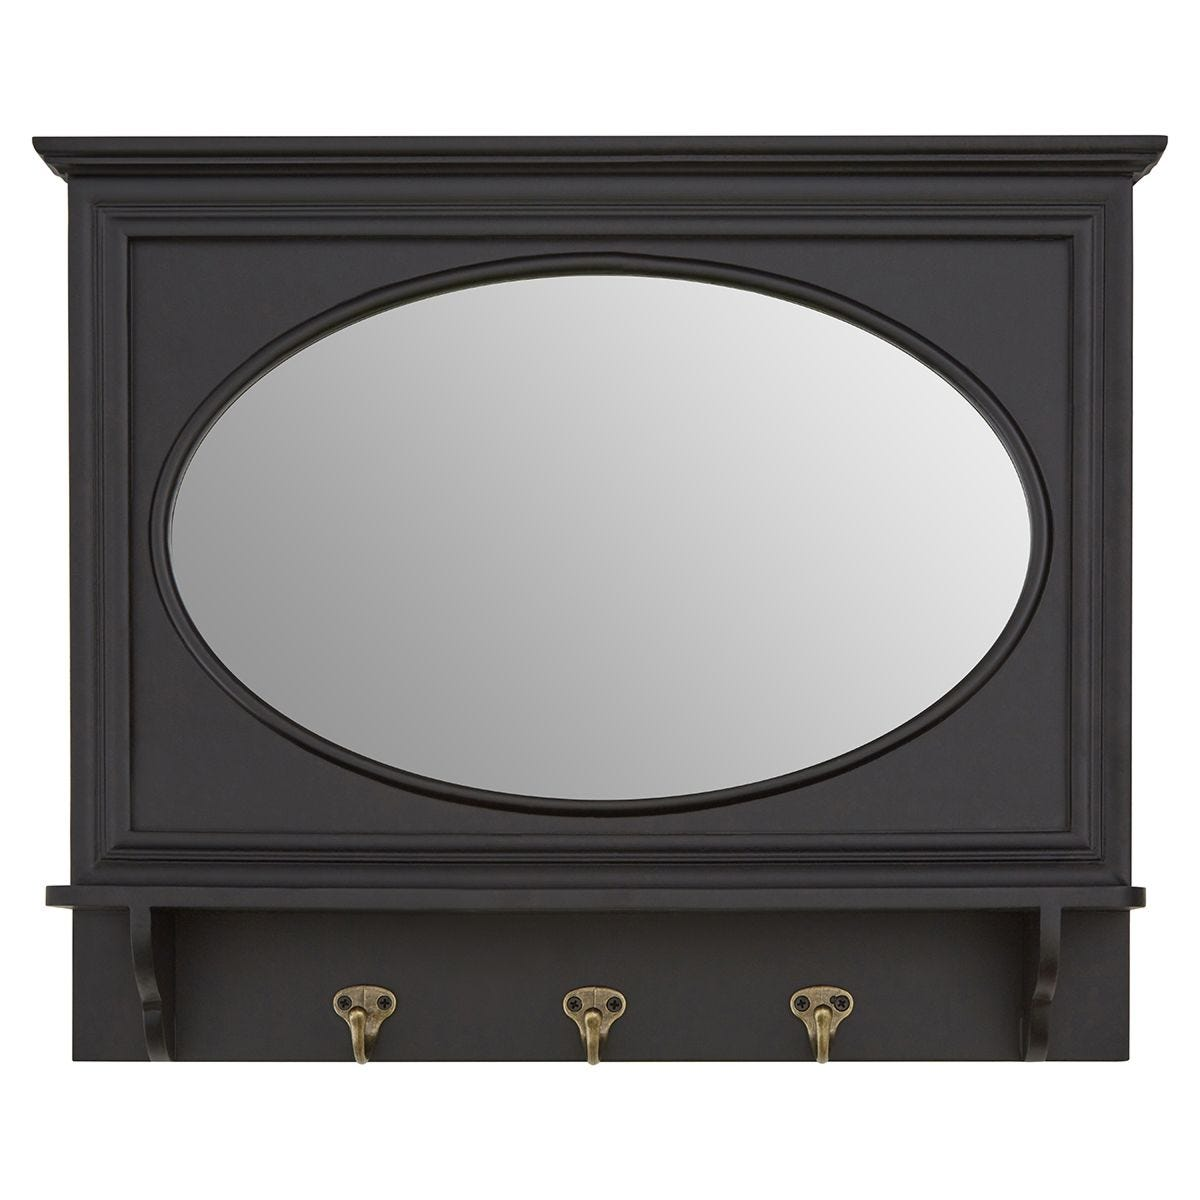 Premier Housewares Whitley Wall Mirror with 3 Hanging Hooks - Black